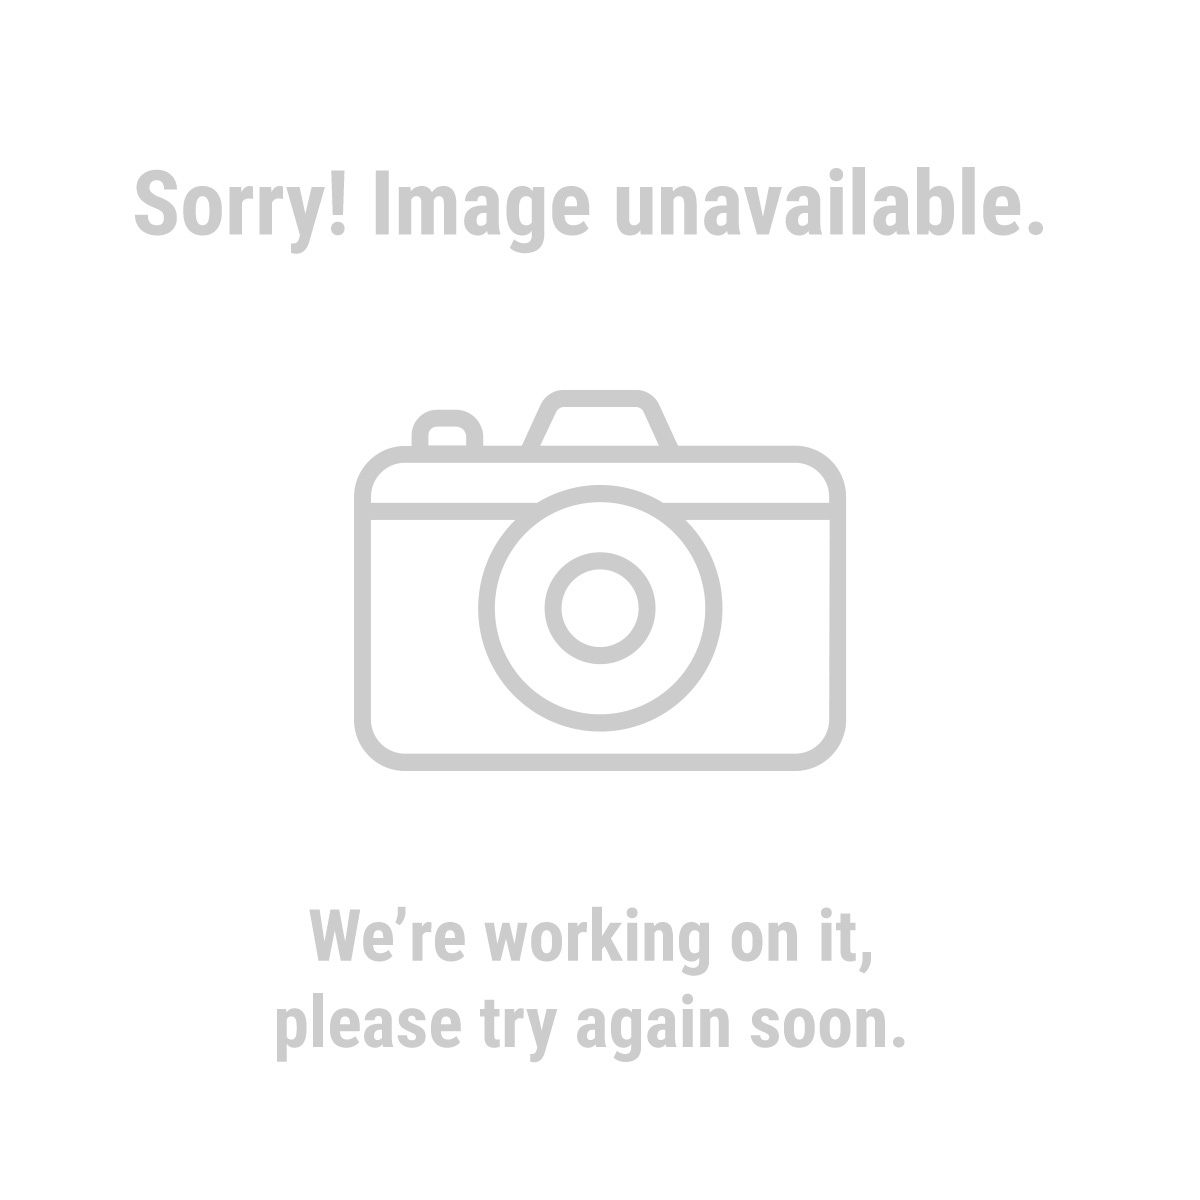 Pittsburgh Automotive 62853 1300 lb. Electric Hoist with Remote Control